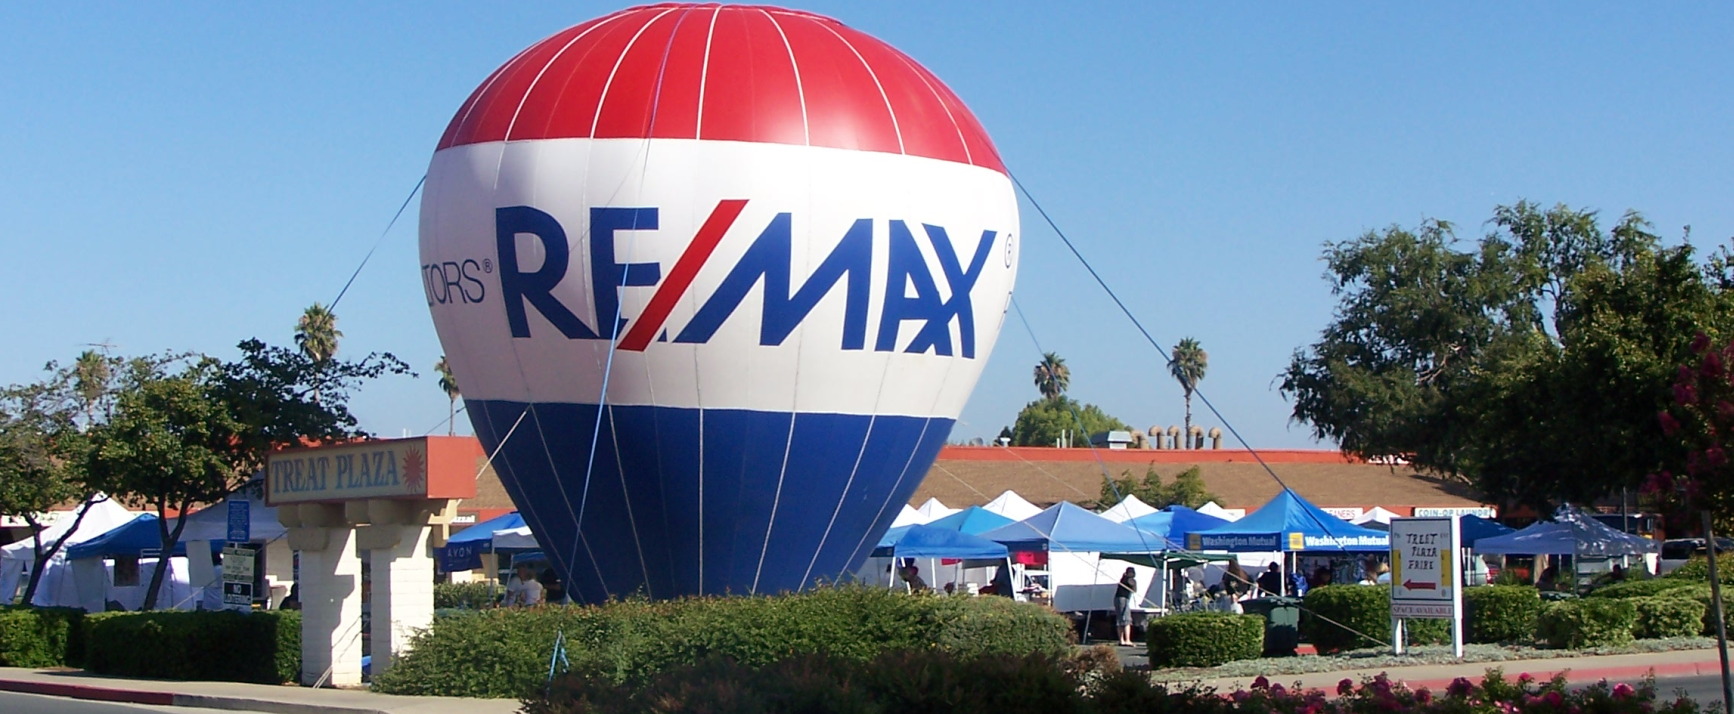 RE/MAX 35 Foot Cold Air Inflatable